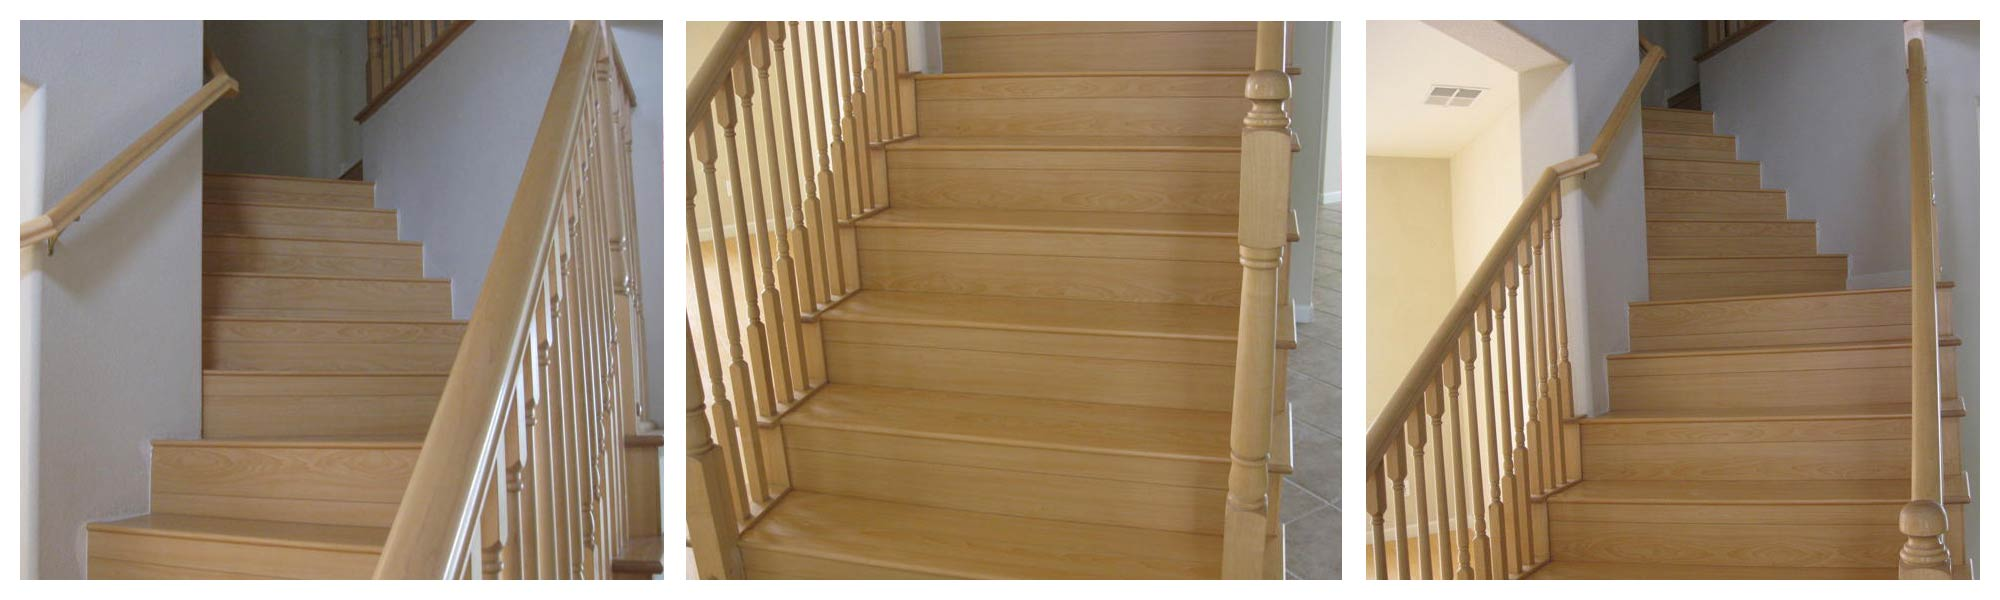 Laminated wood for stair for qualitygranite and tile inc